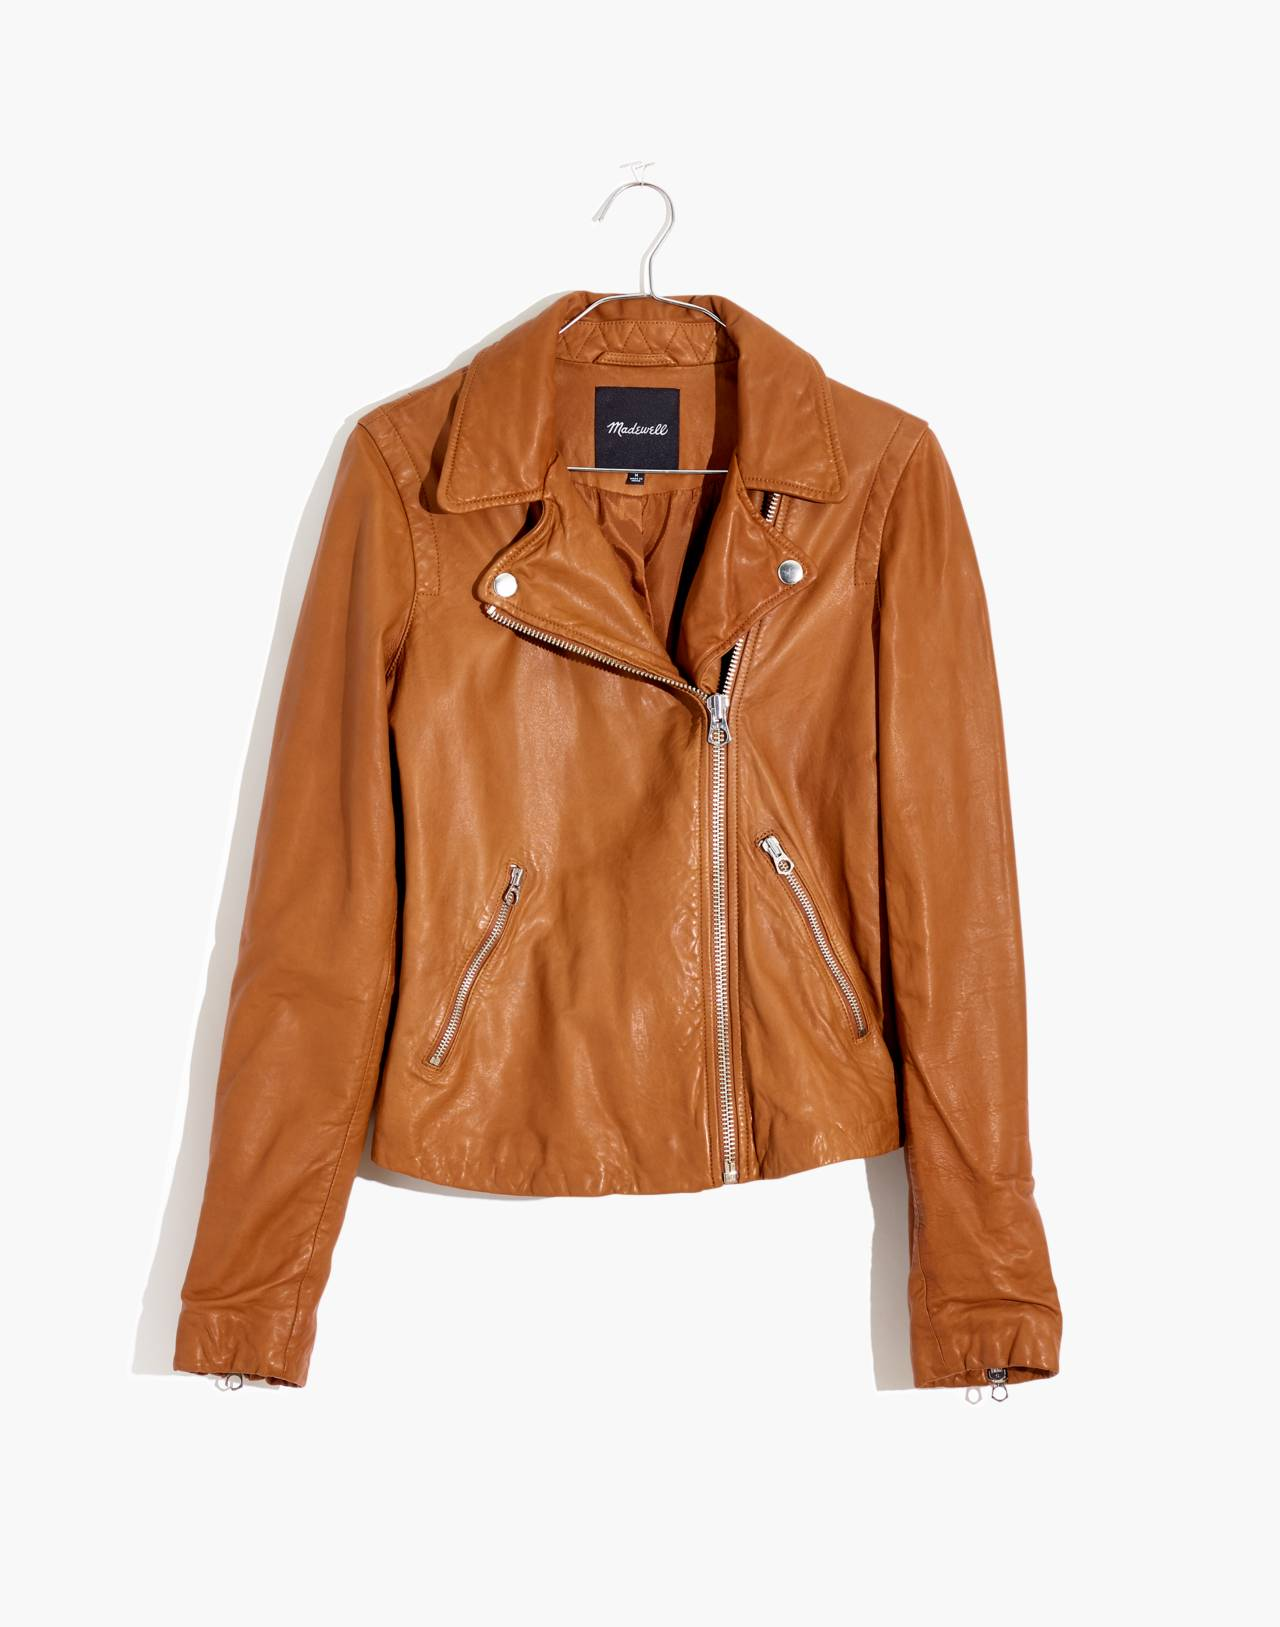 Washed Leather Motorcycle Jacket in burnt sienna image 1